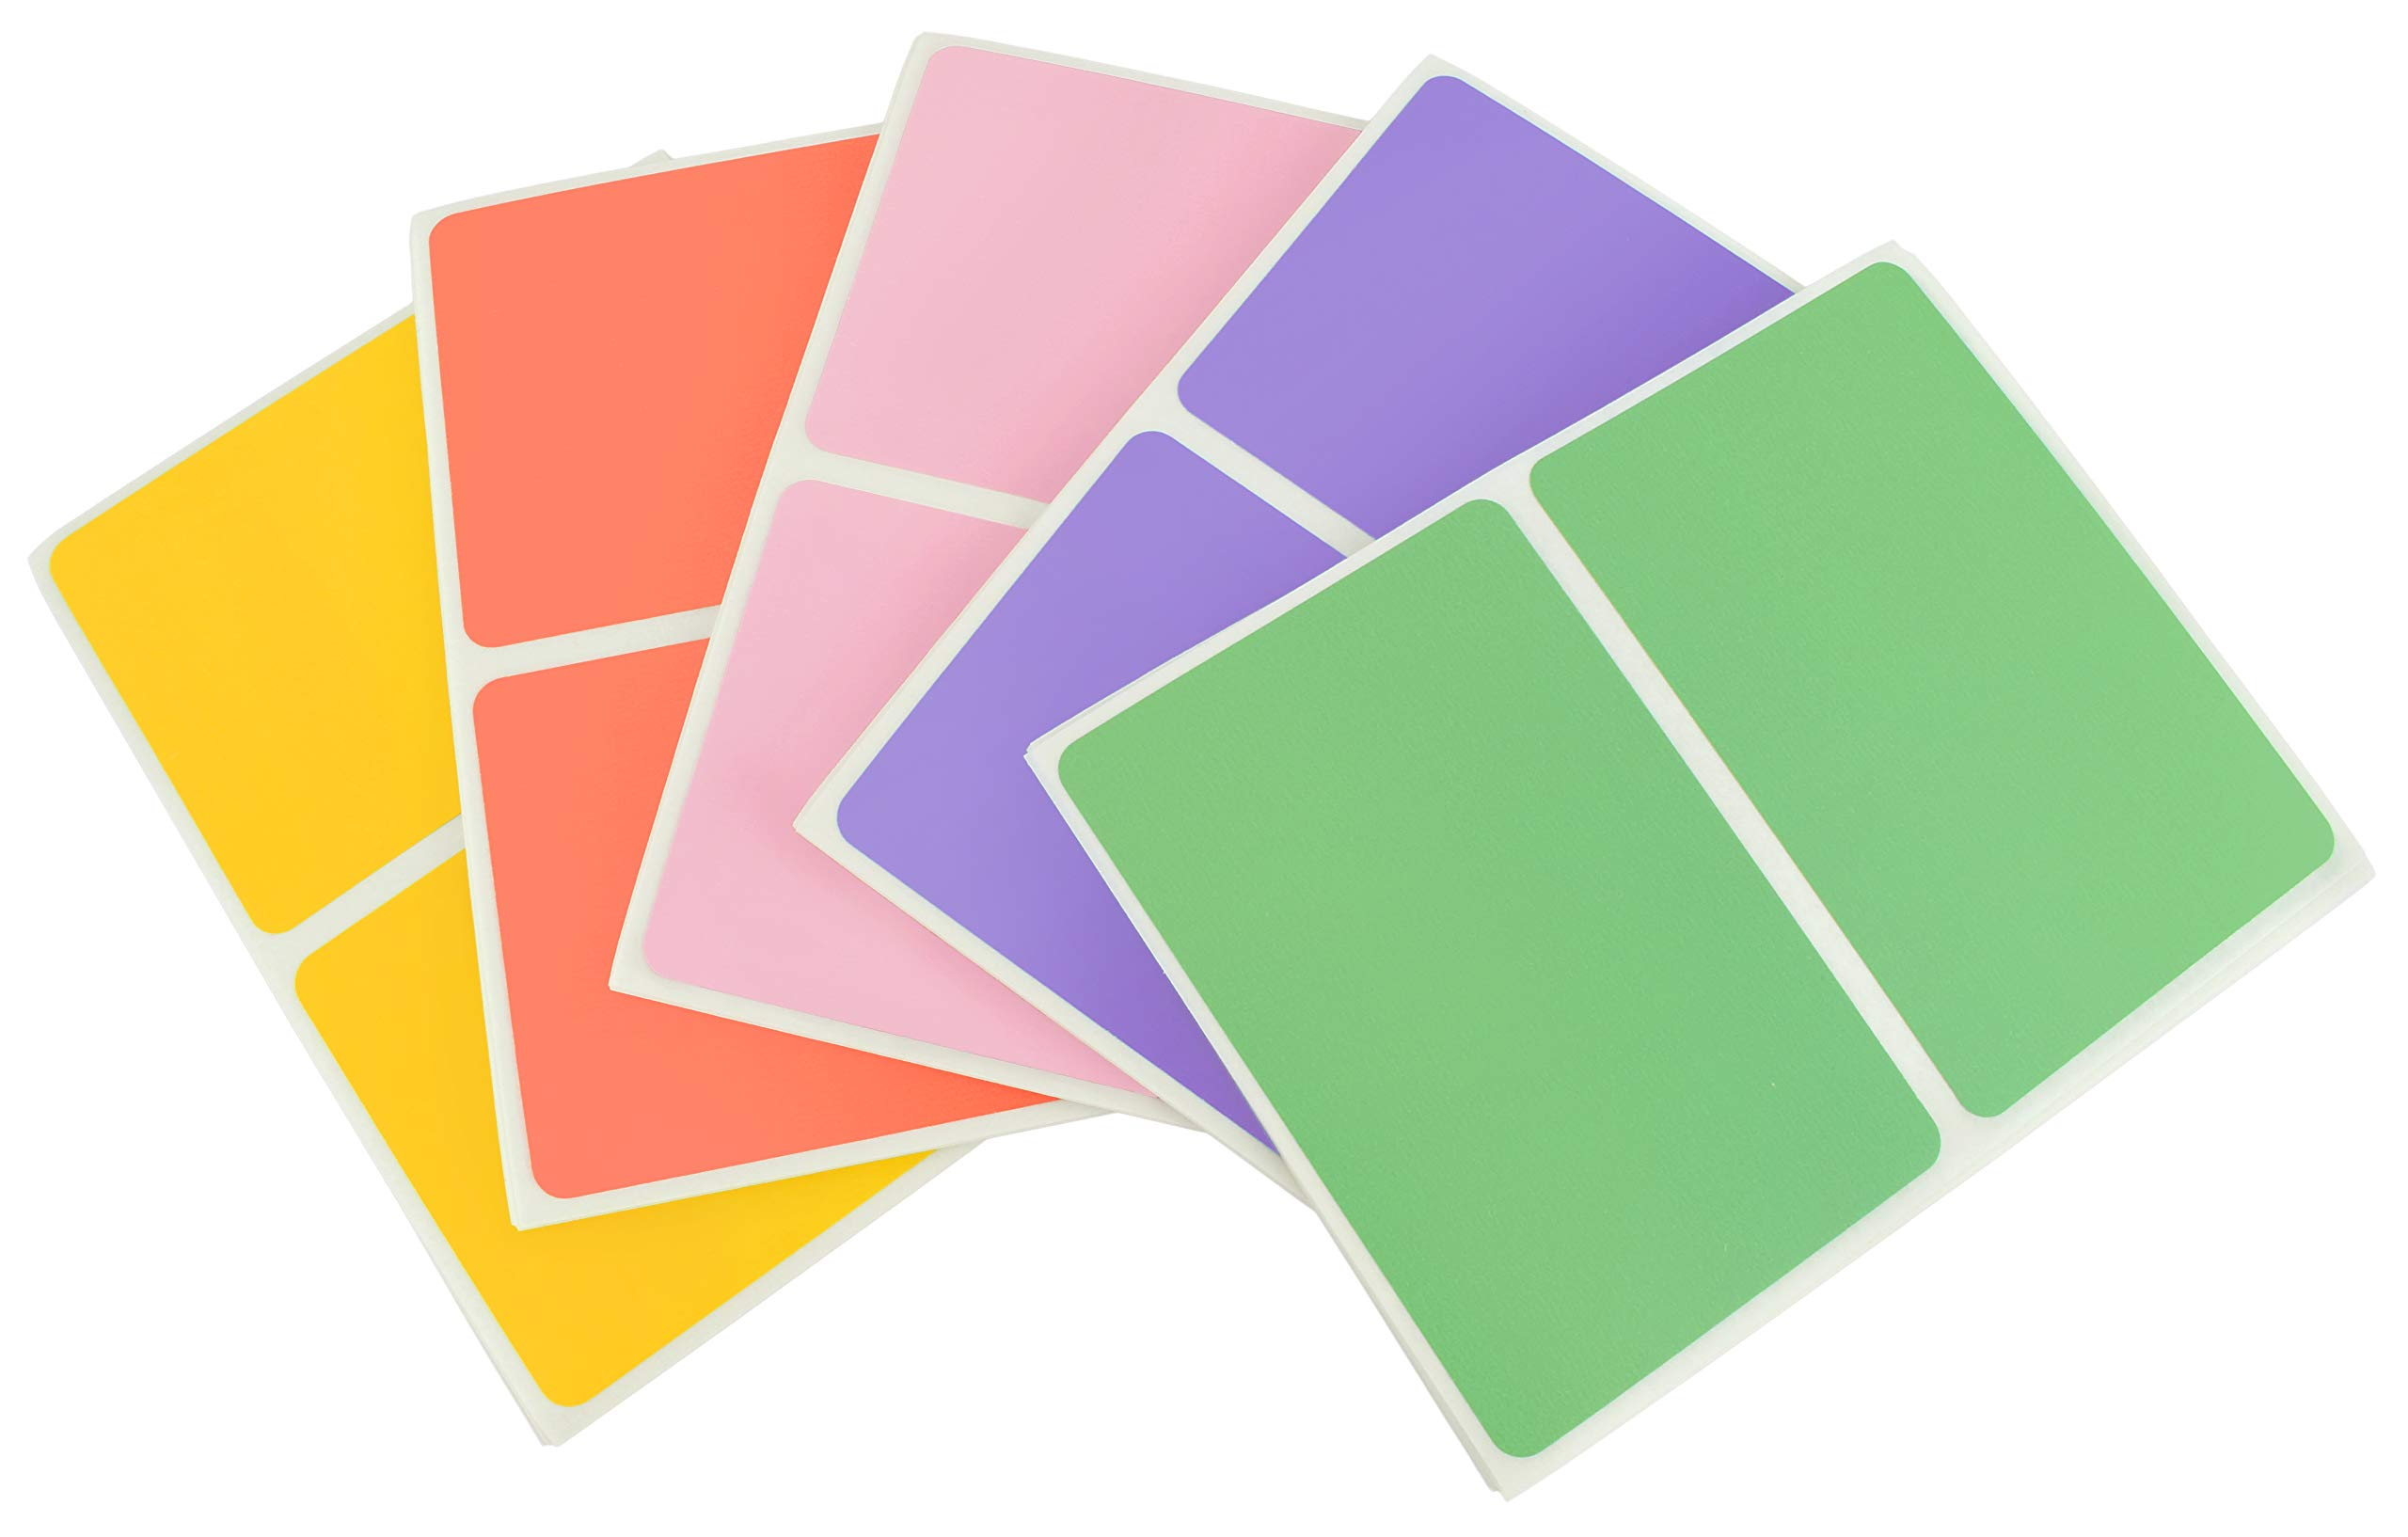 ChromaLabel 2 x 3 Inch Colored Rectangle Name Tag Stickers, 5 Assorted Color Variety Pack,150 Pack, Pastel Colors